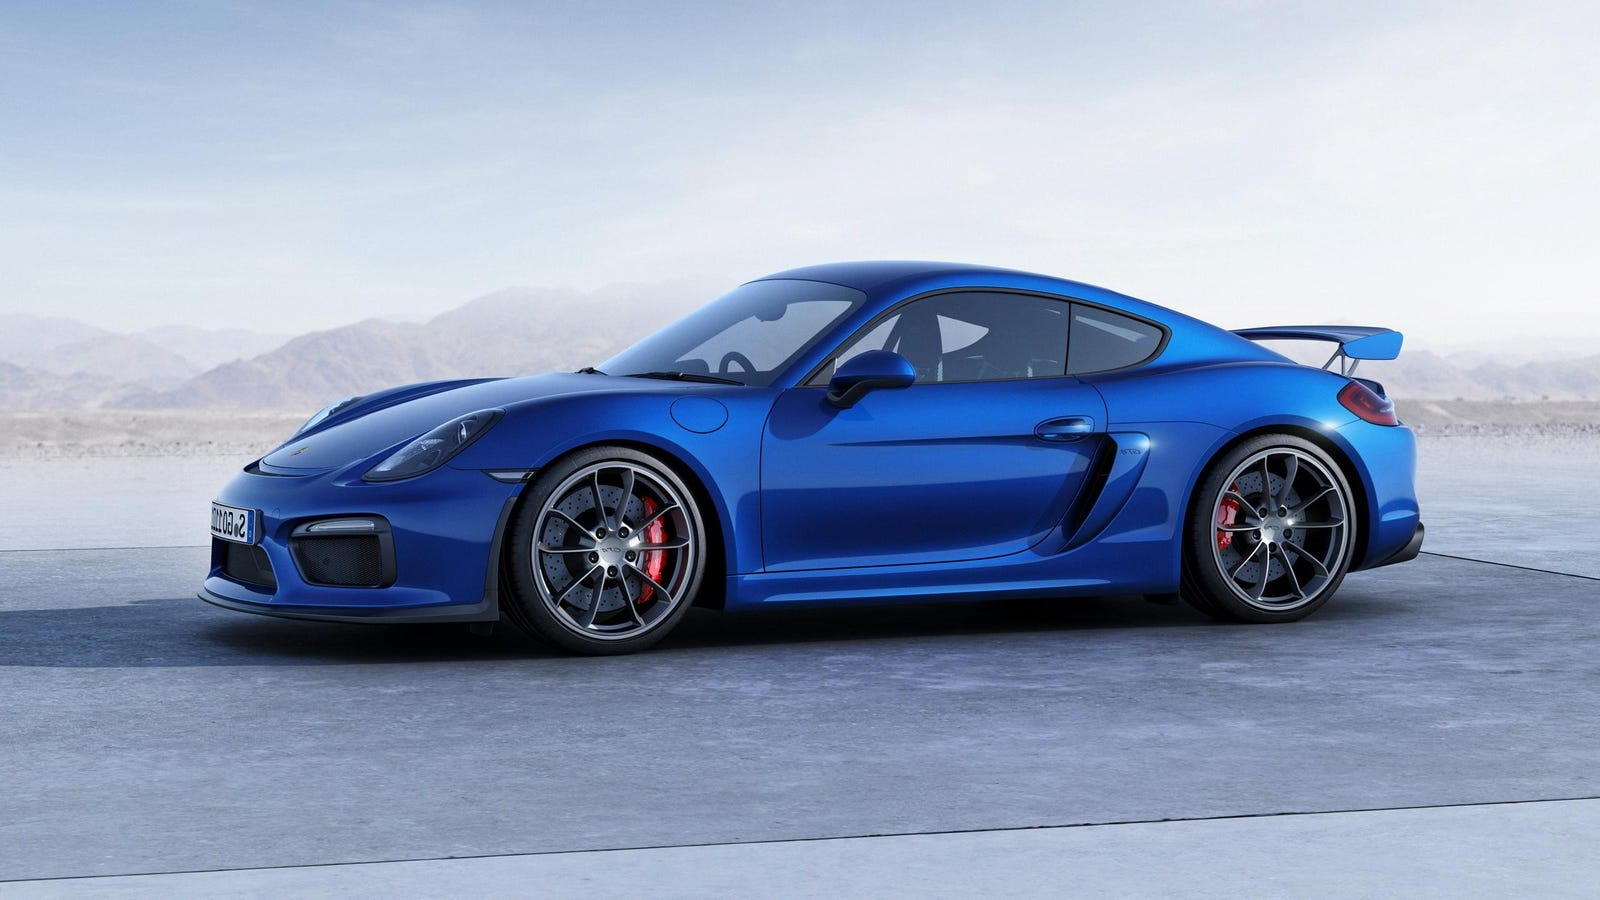 This Insane Loan Term On A Used Porsche Shows That Even Rich People Can Be Dumb At Math